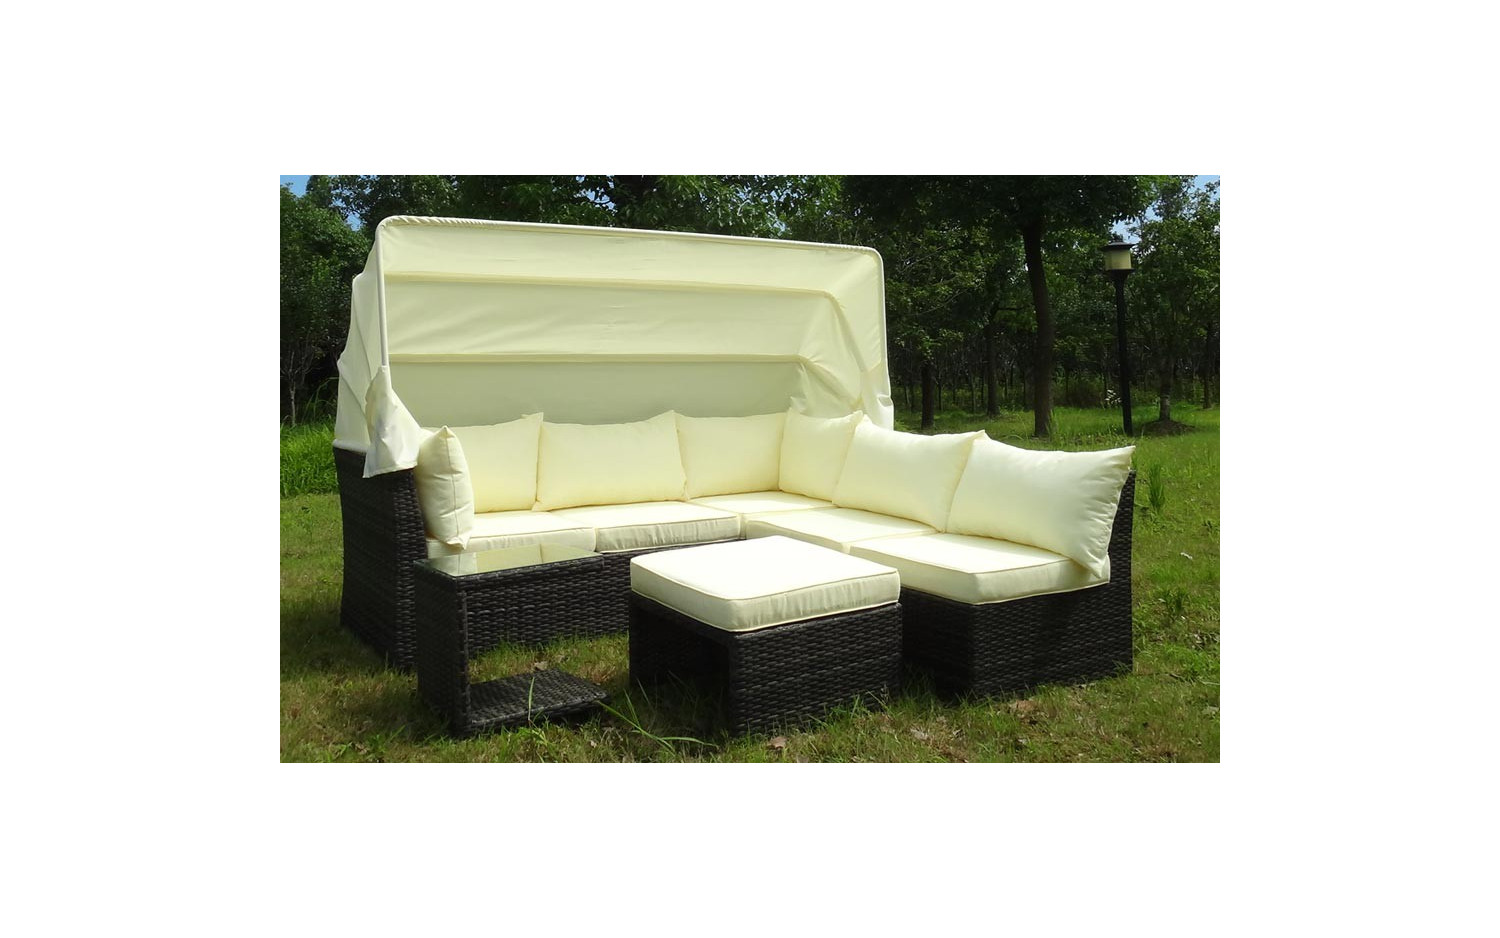 baidani rattan garten funktions lounge sofa weekend mit sonnendach baidani shop. Black Bedroom Furniture Sets. Home Design Ideas